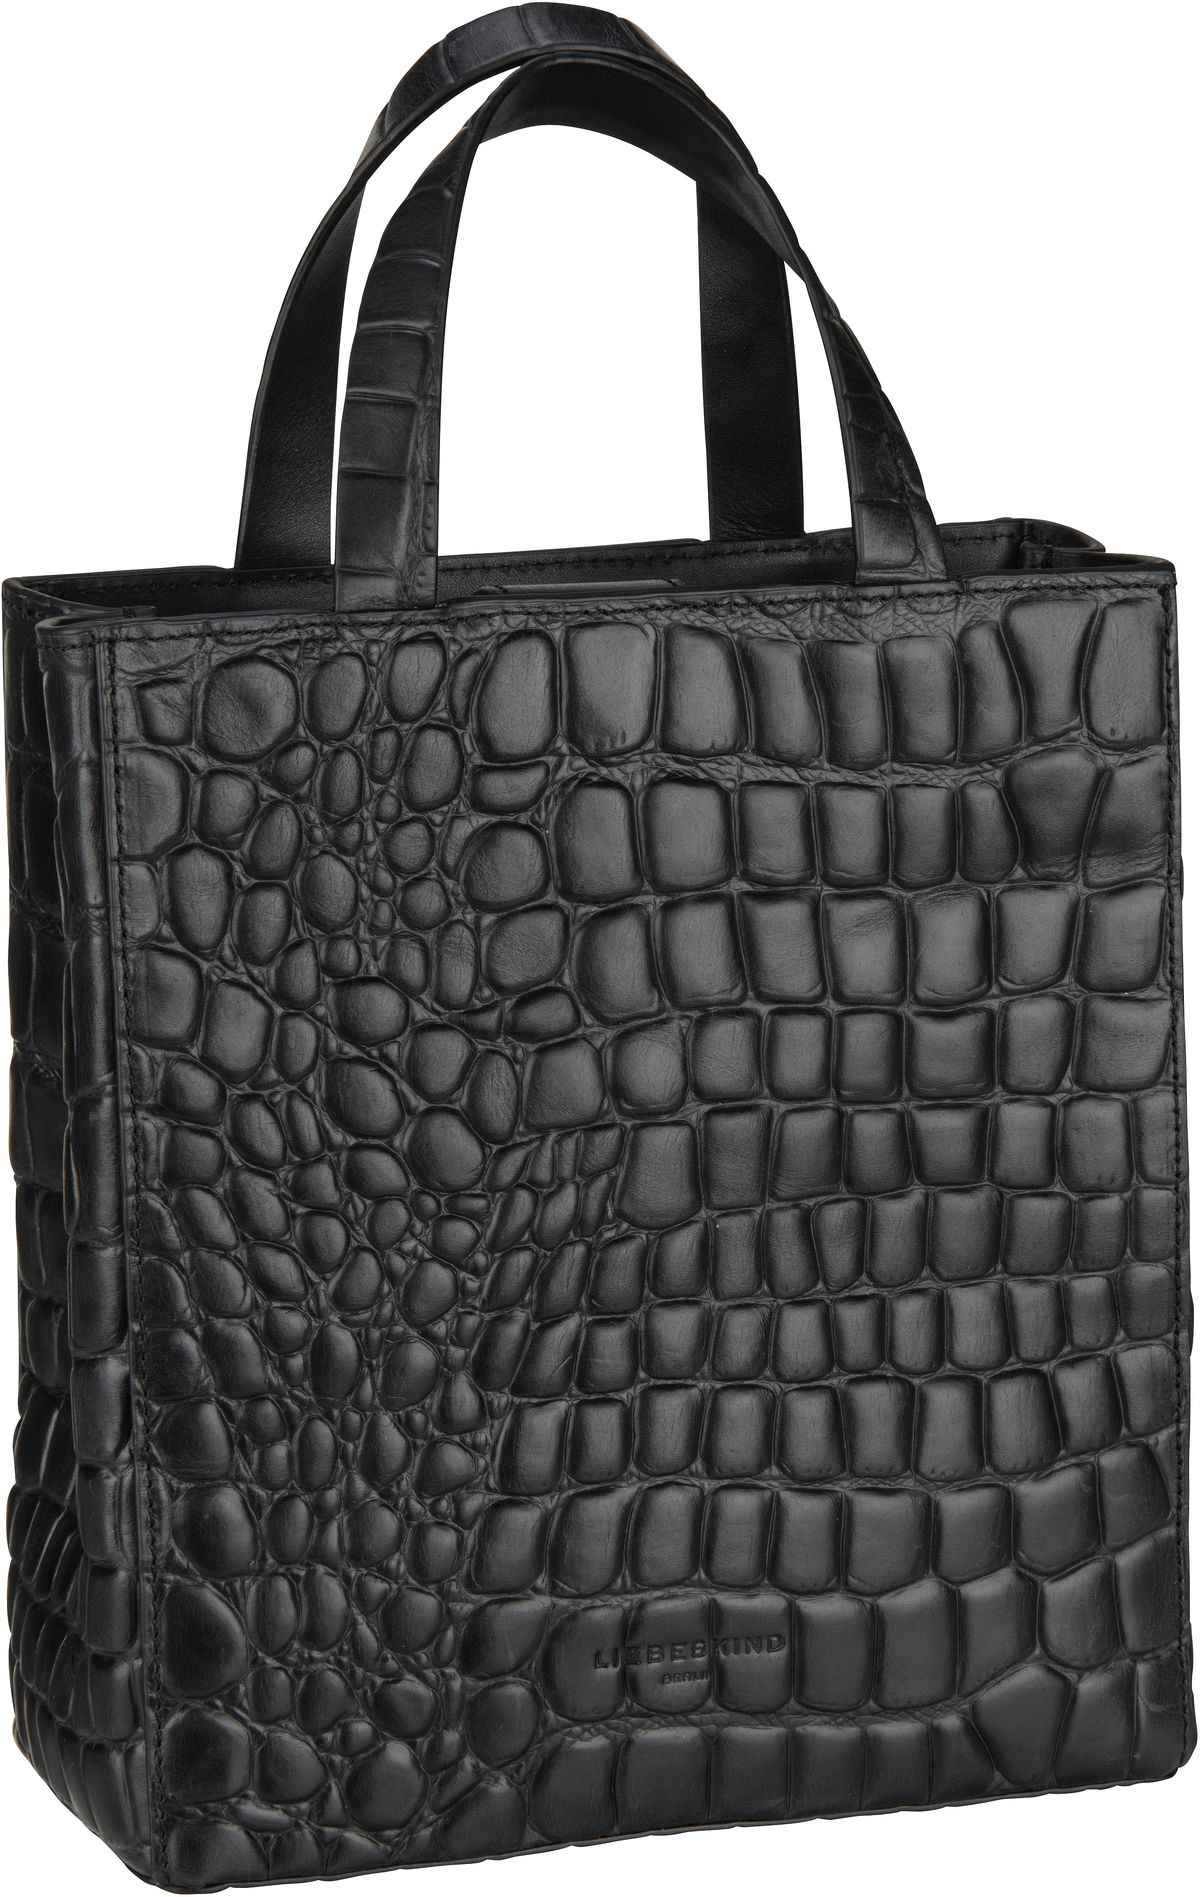 Berlin Handtasche Paper Bag Croco Tote S Black